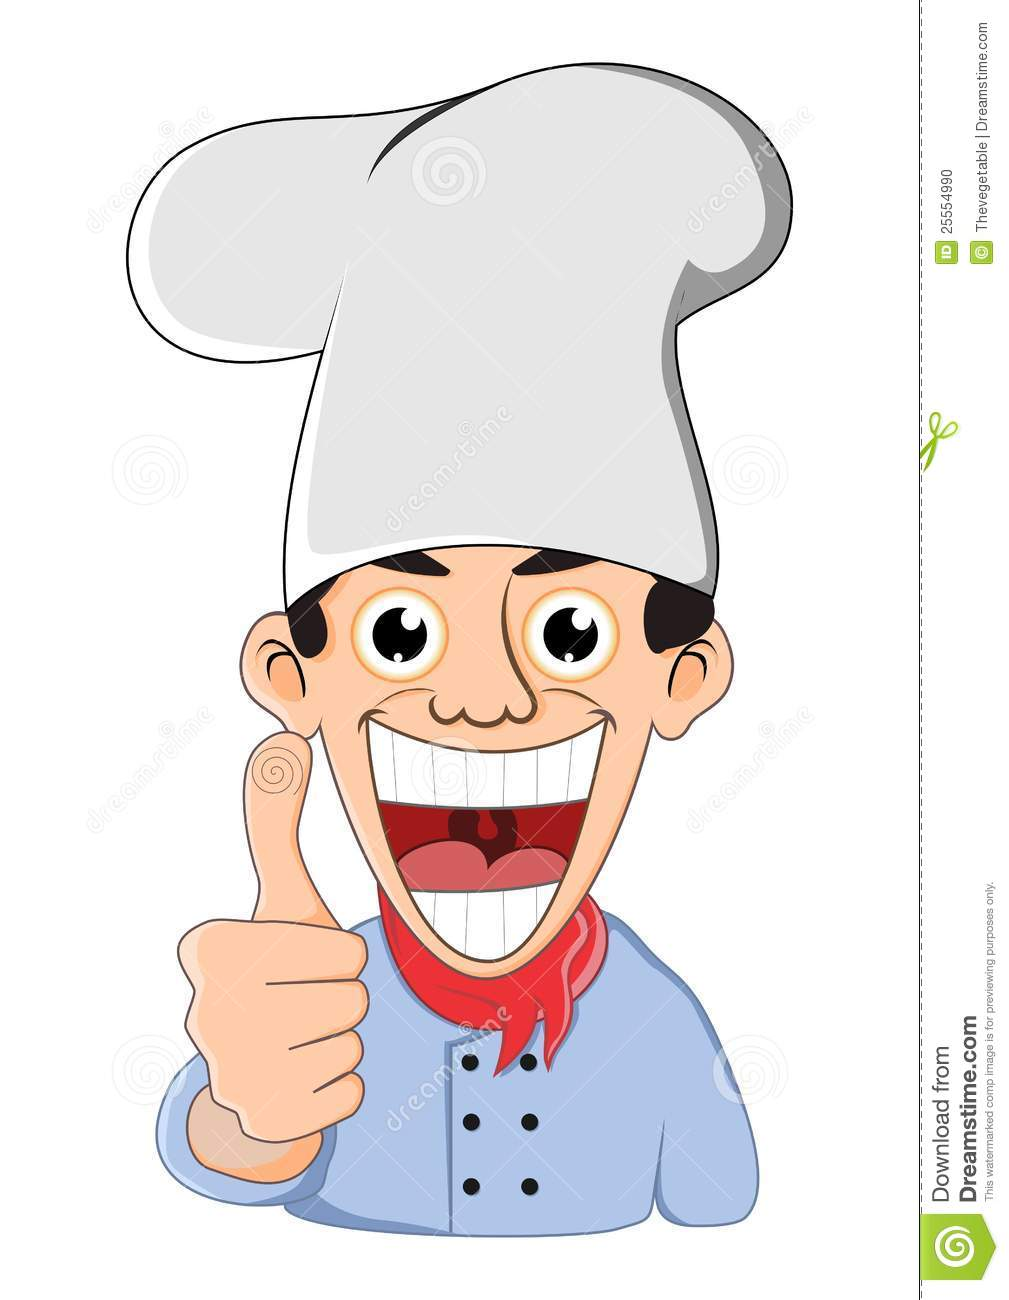 Mr chef head clipart image transparent library Mr chef head clipart - ClipartFest image transparent library